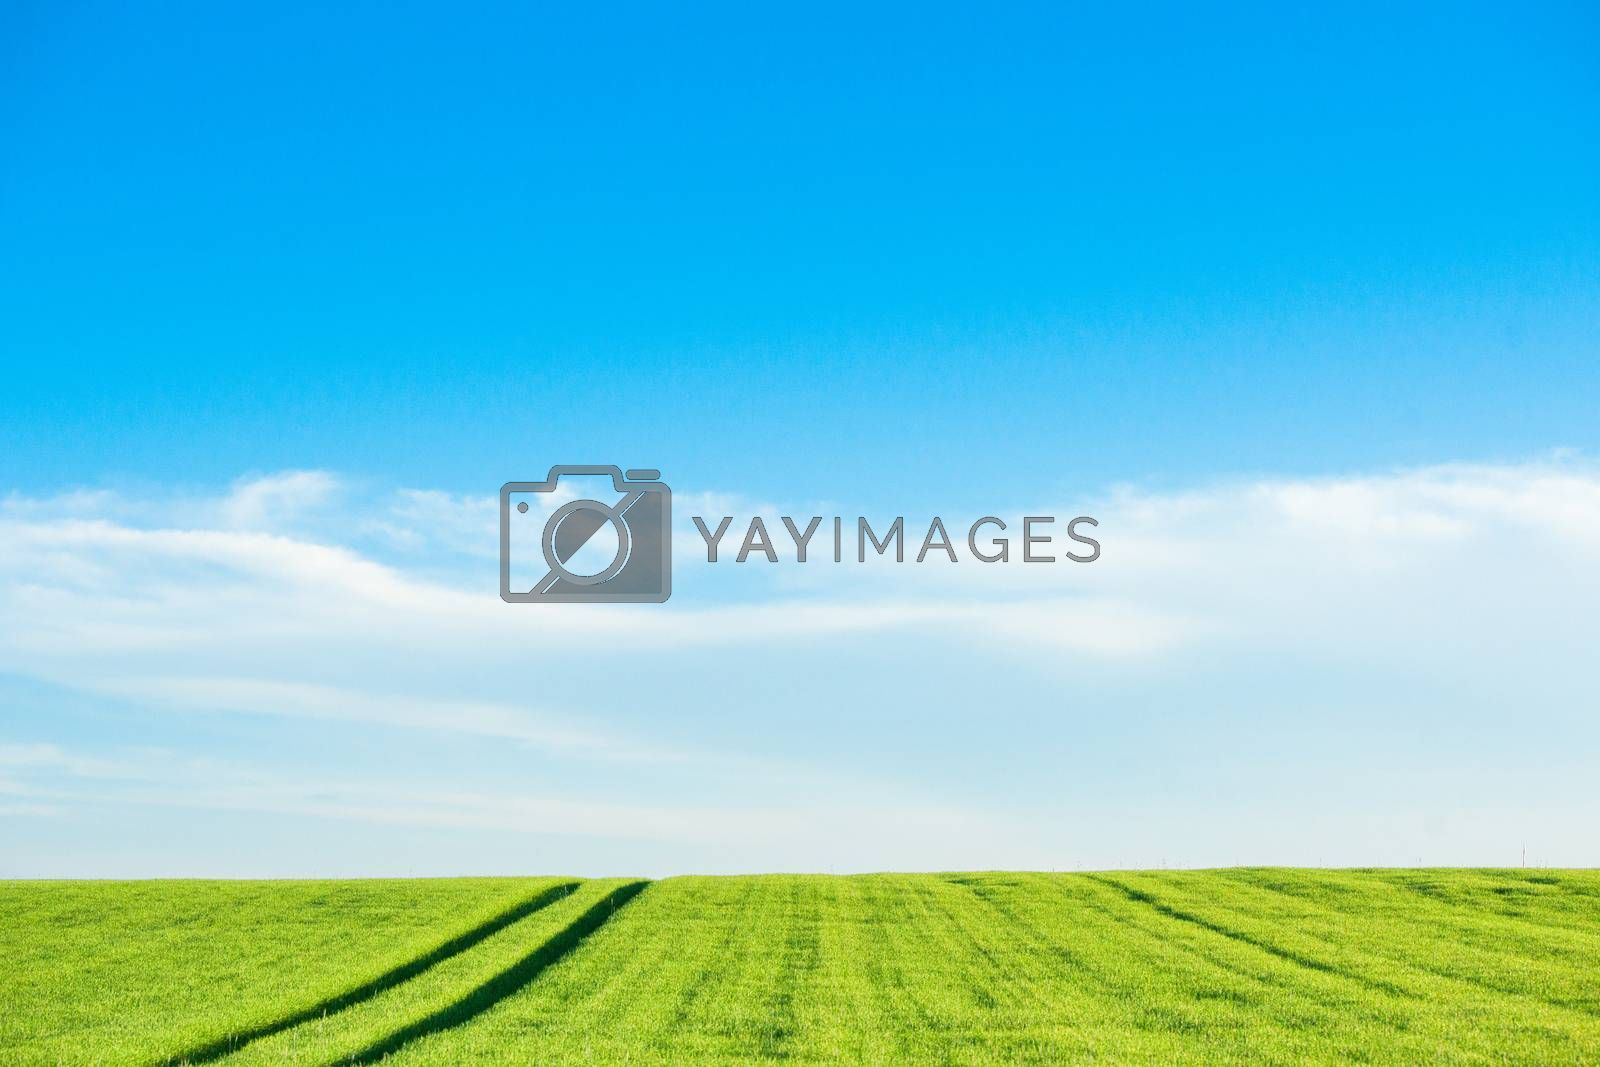 Countryside landscape with green crops and field tracks